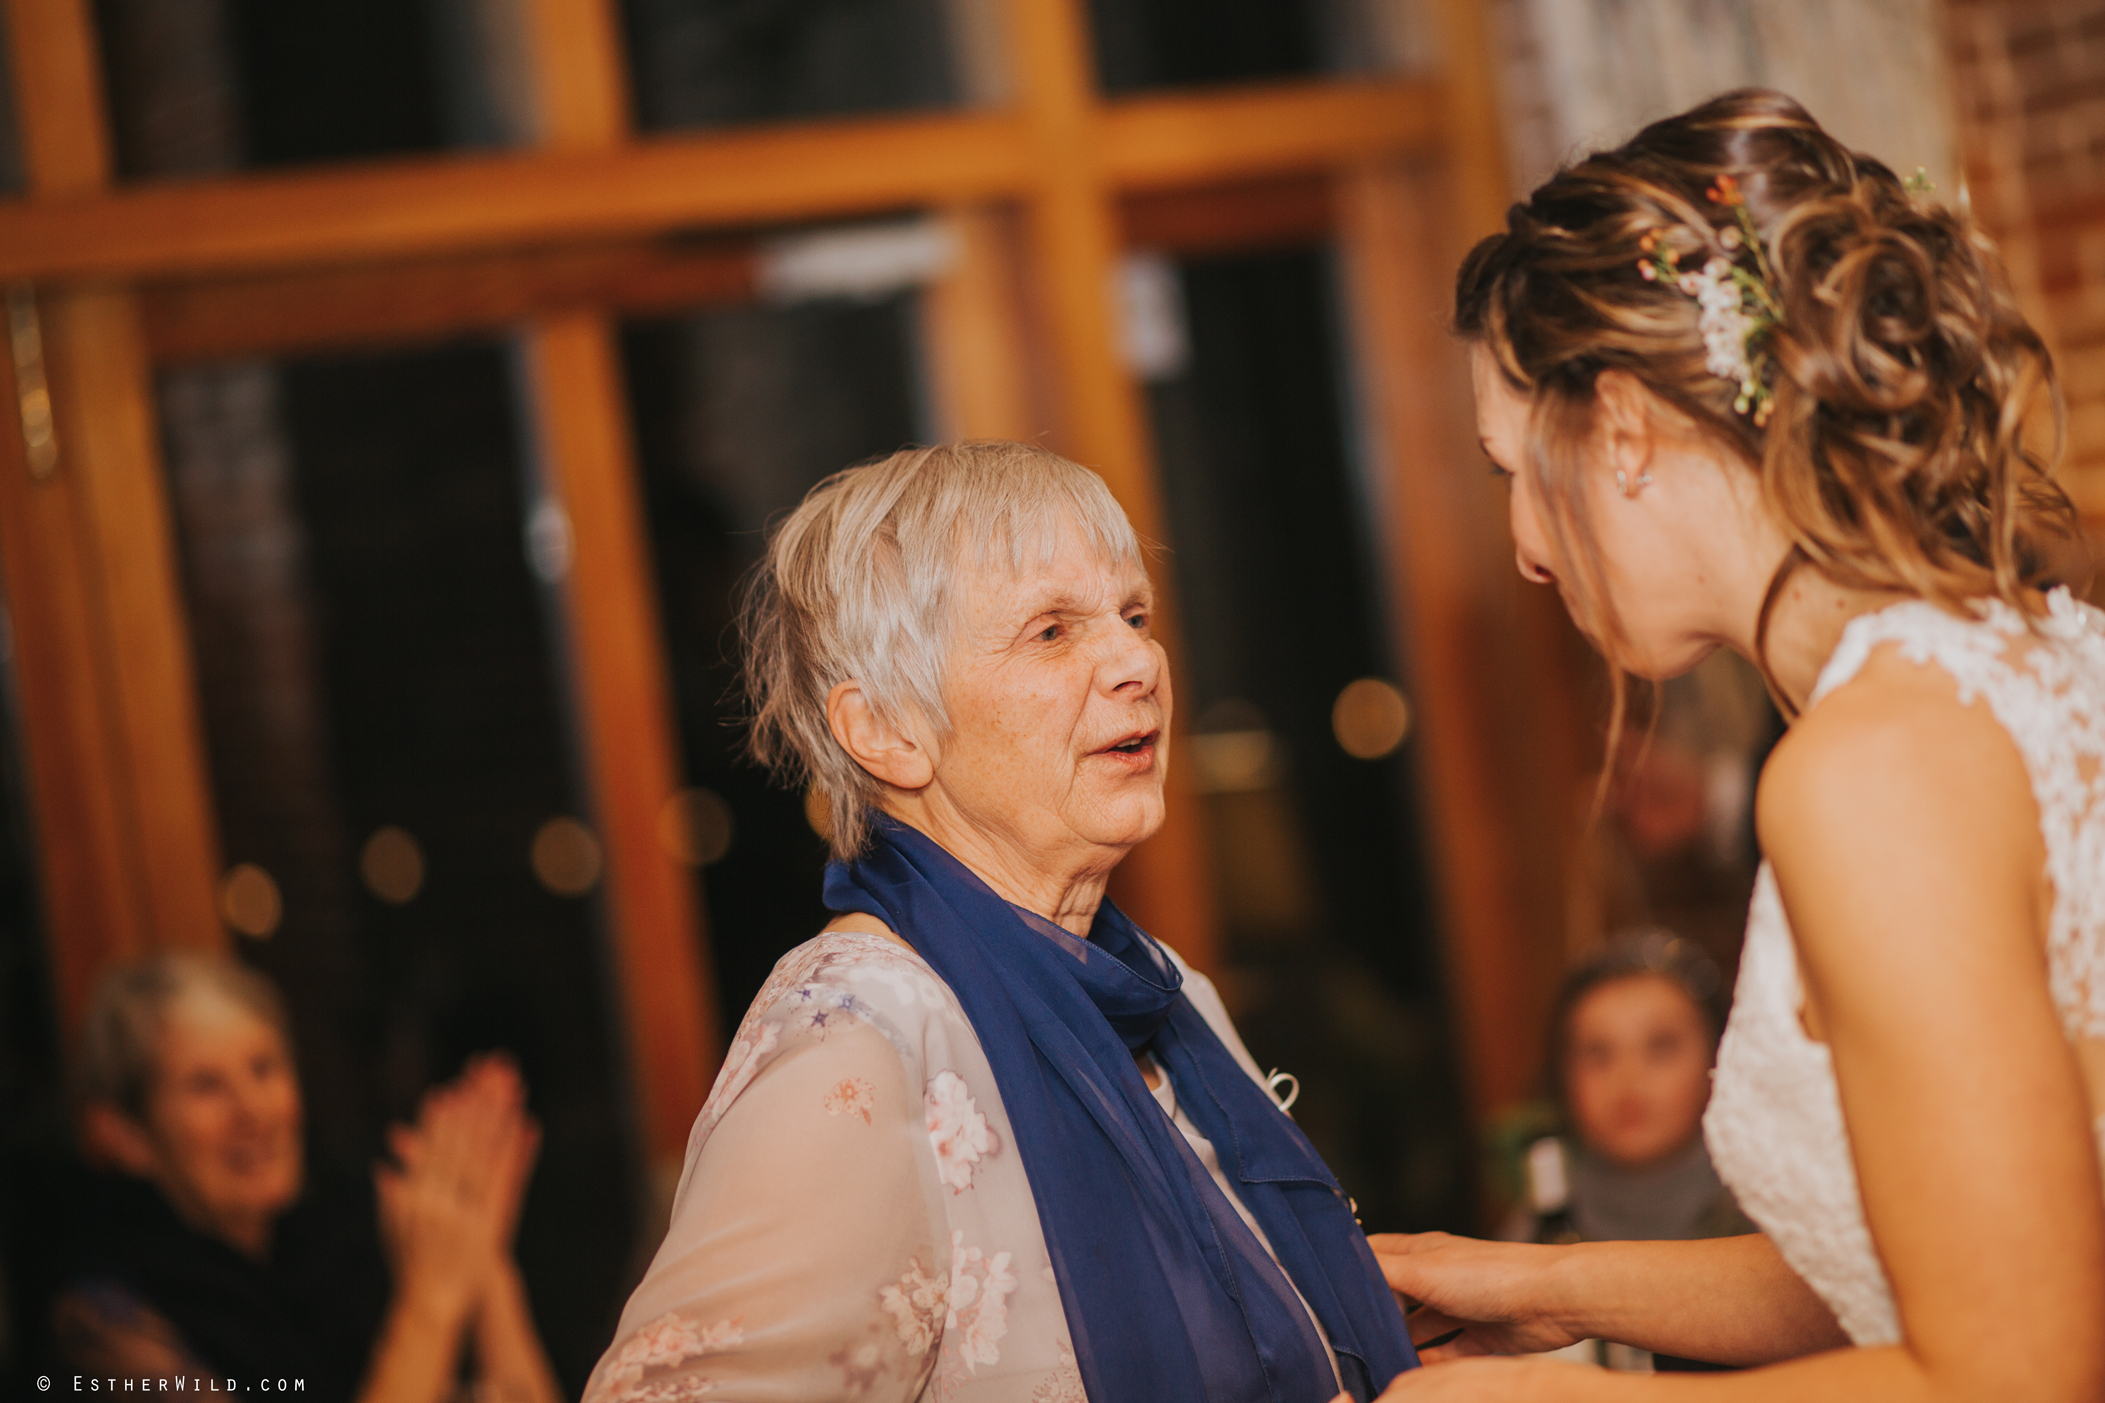 Wedding_Photographer_Chaucer_Barn_Holt_Norfolk_Country_Rustic_Venue_Copyright_Esther_Wild_IMG_1648_Z72A0811.jpg